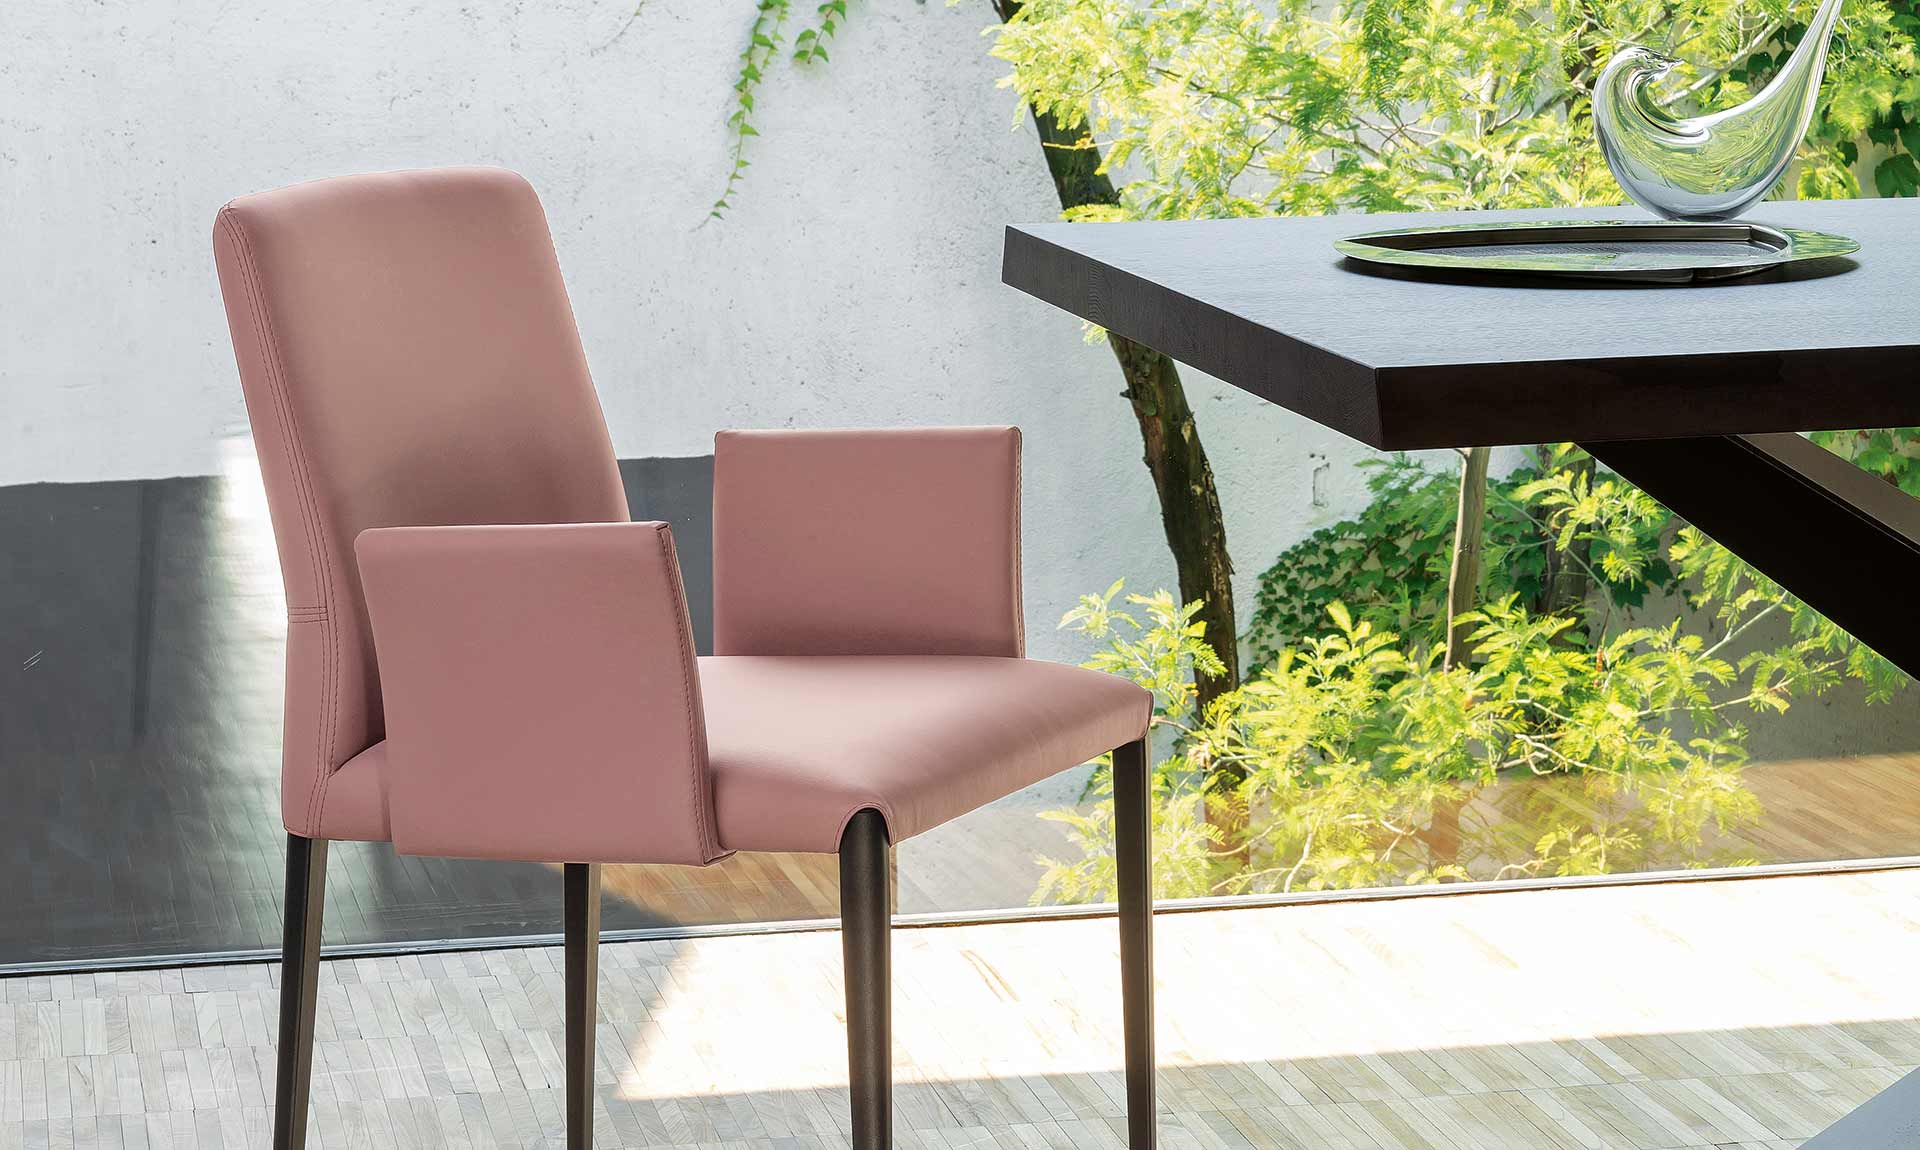 Modern Italian Design dining chair by Riflessi-aurora